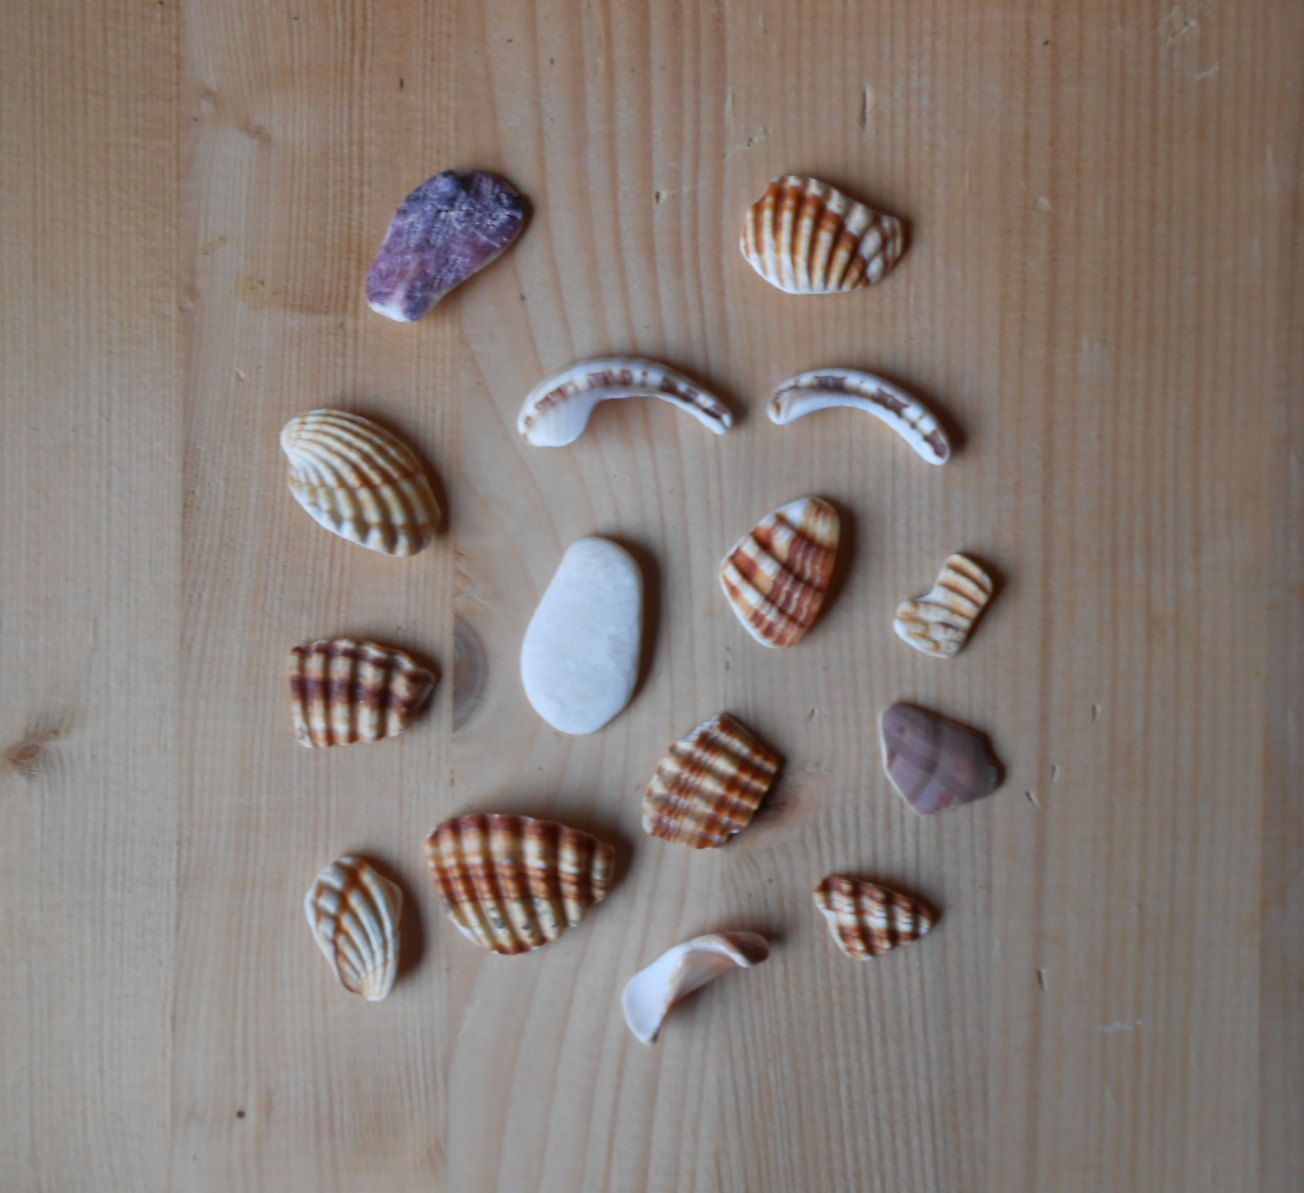 Shell fragments, craft supply, 15 pieces, jewelry supplies, surf tumbled shell fragments C19 di lepropostedimari su Etsy